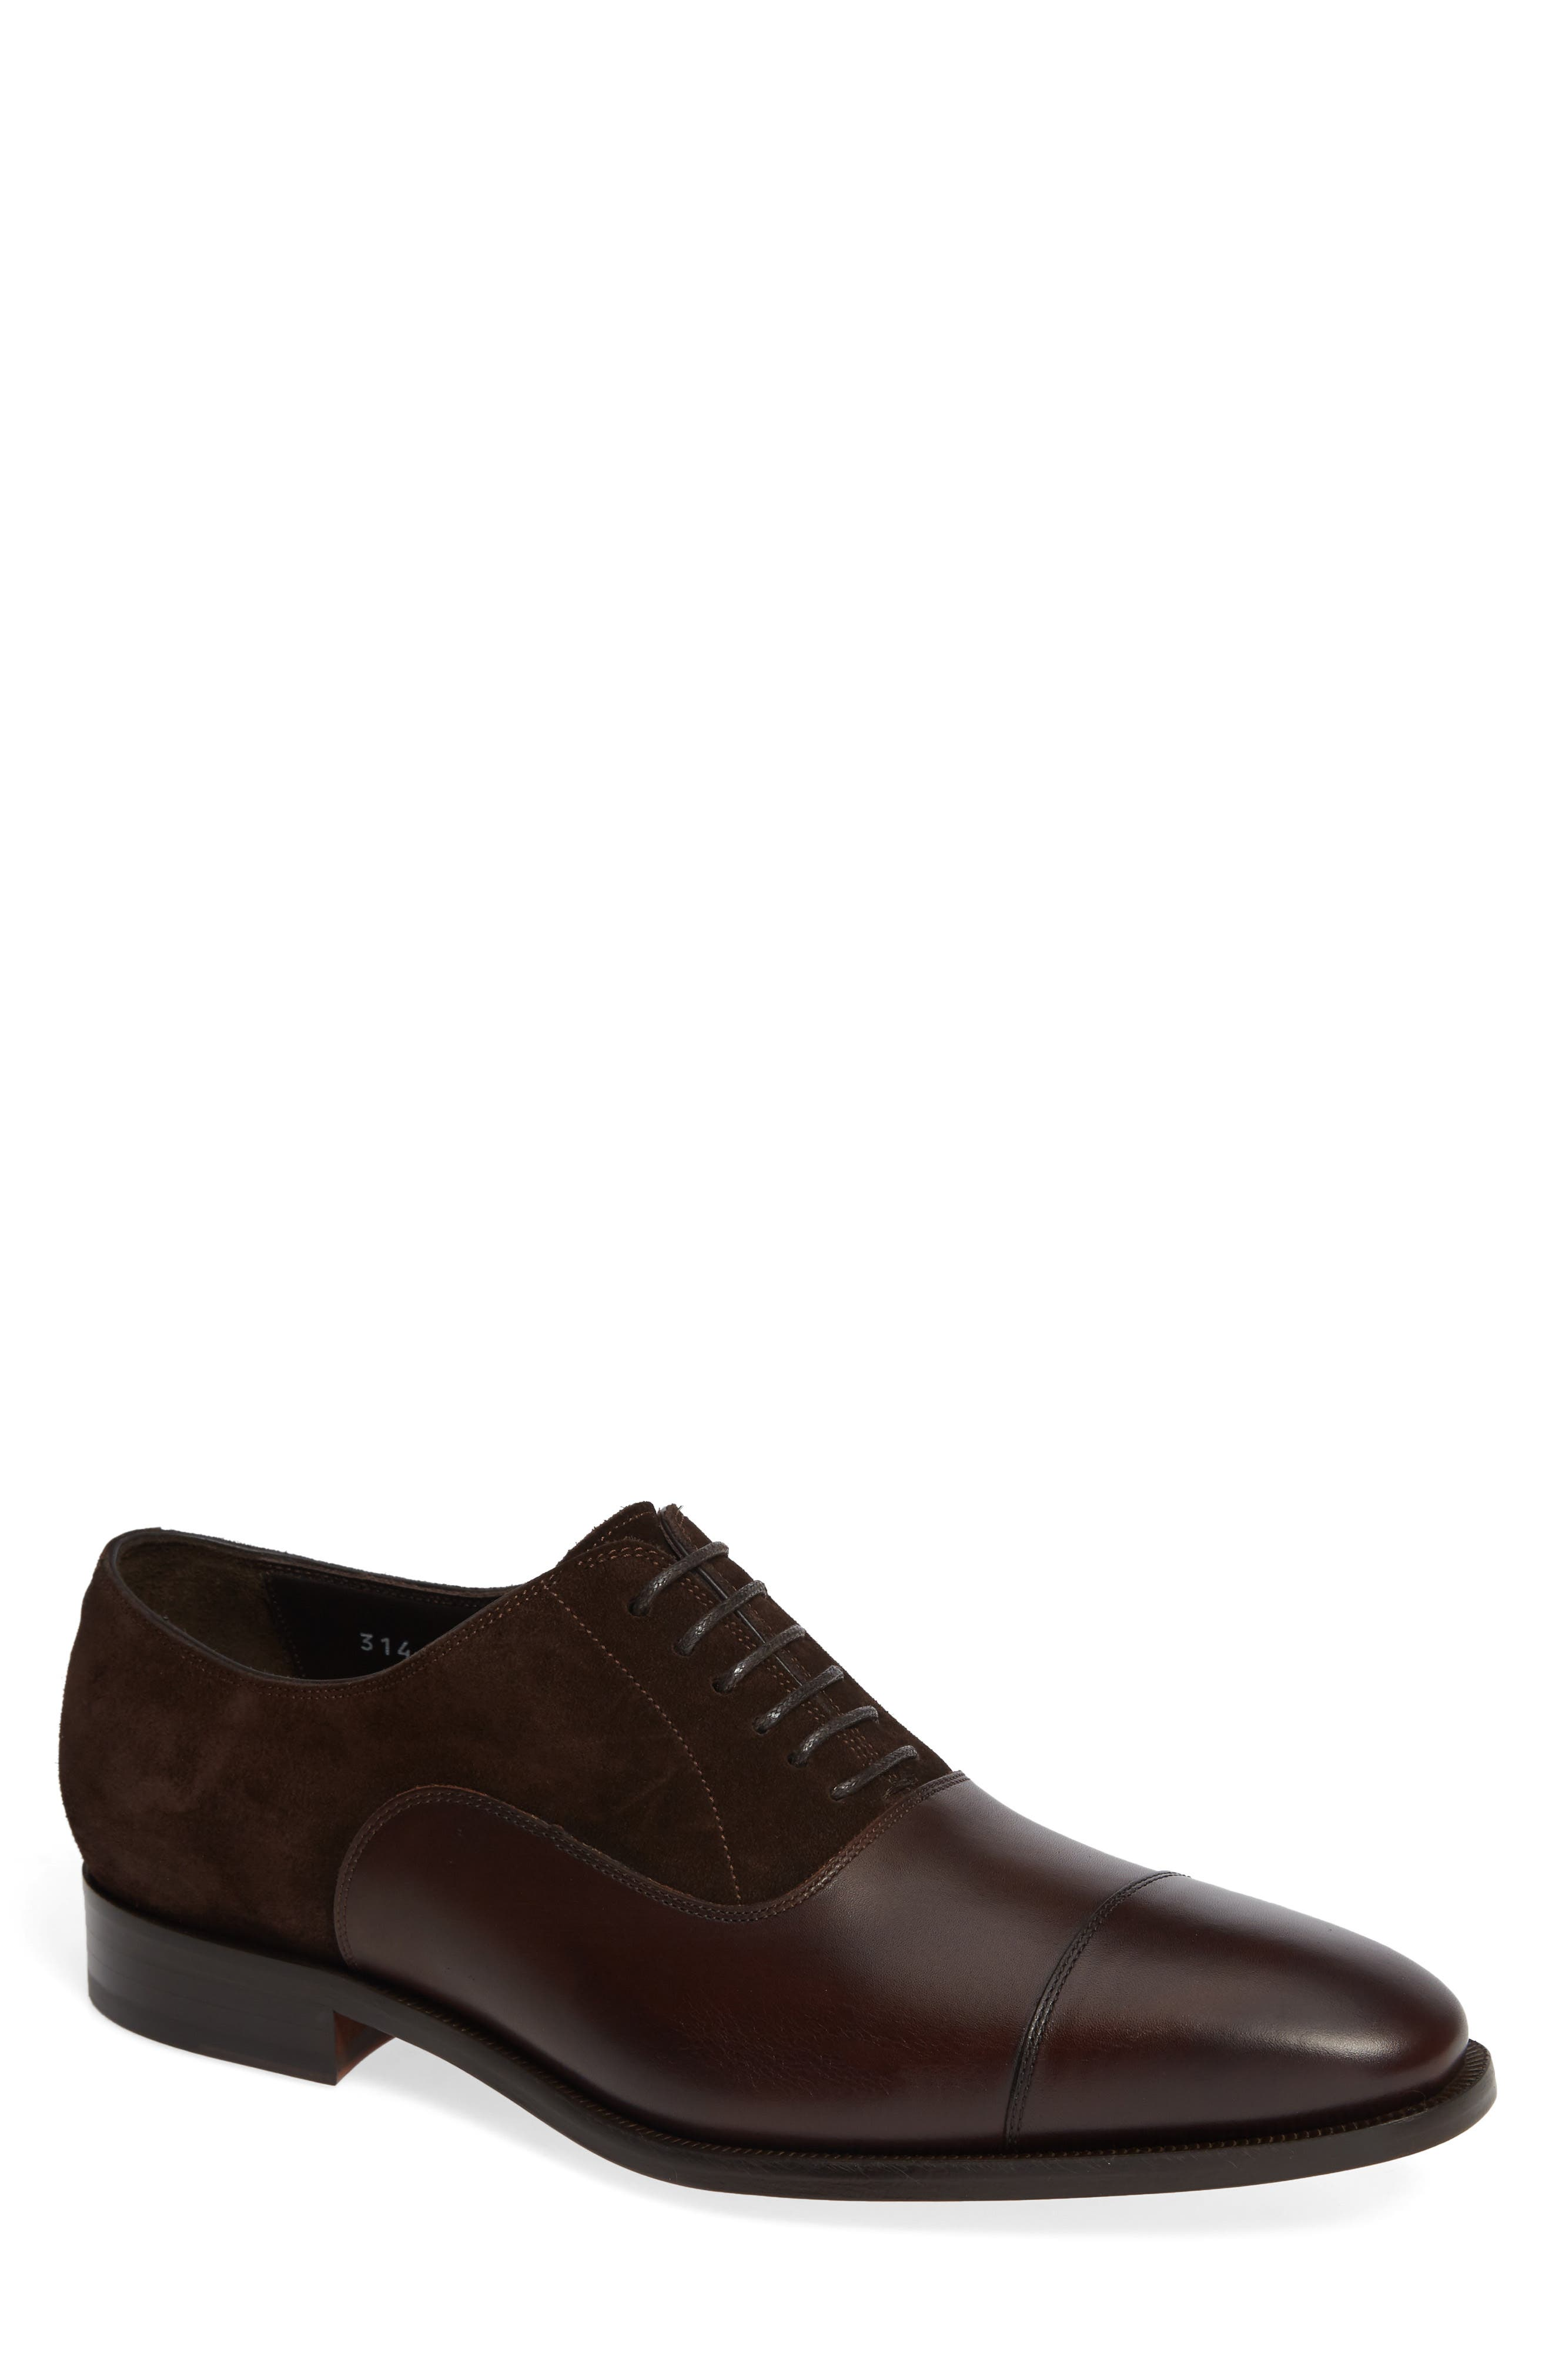 Amadora Cap Toe Oxford,                         Main,                         color, BERRY/ BROWN LEATHER